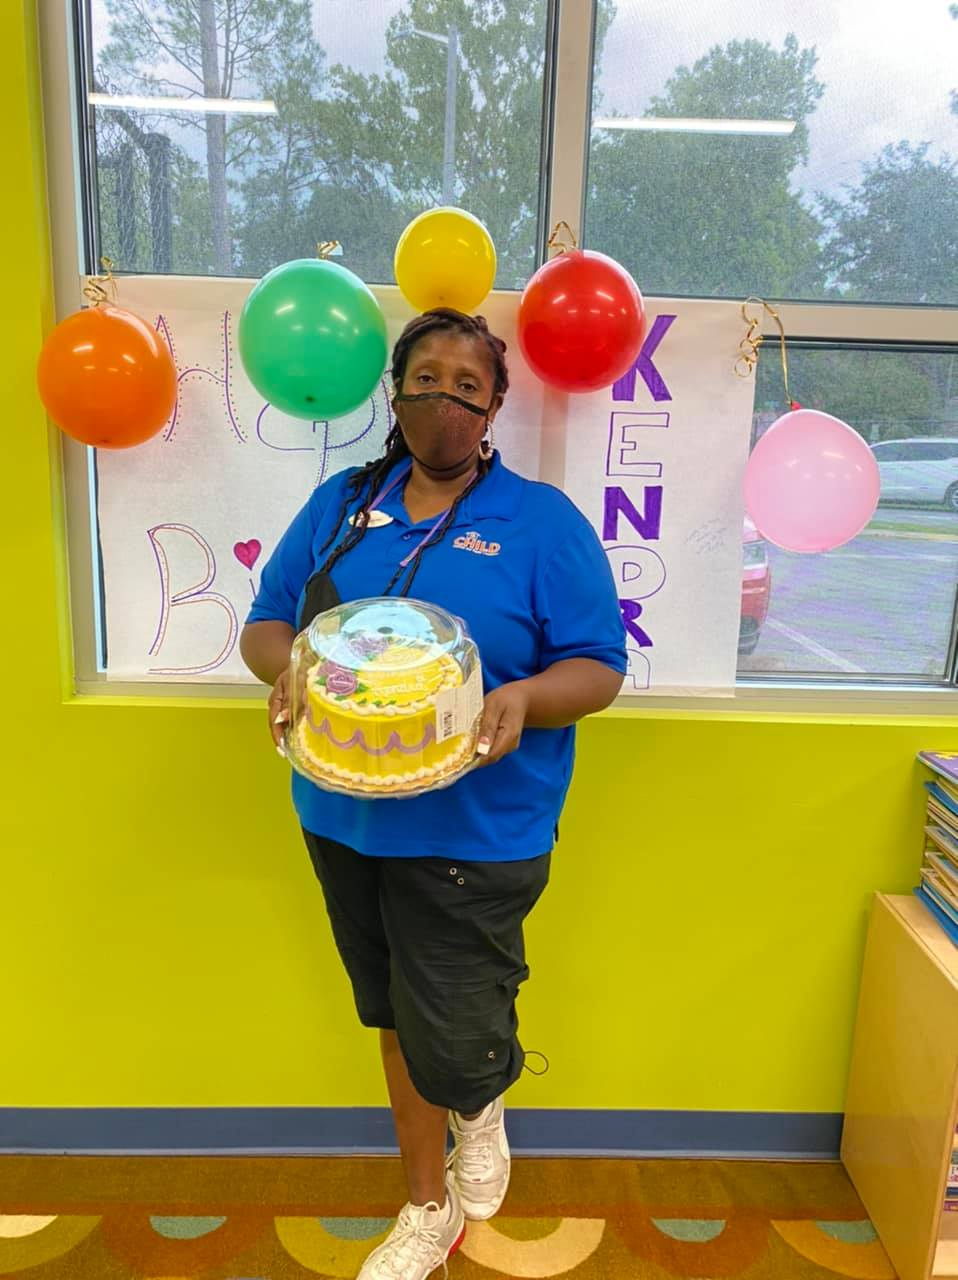 Mrs. Kendra holds a cake for her birthday, which we celebrated during Day #2 of the Summer 2021 teacher training